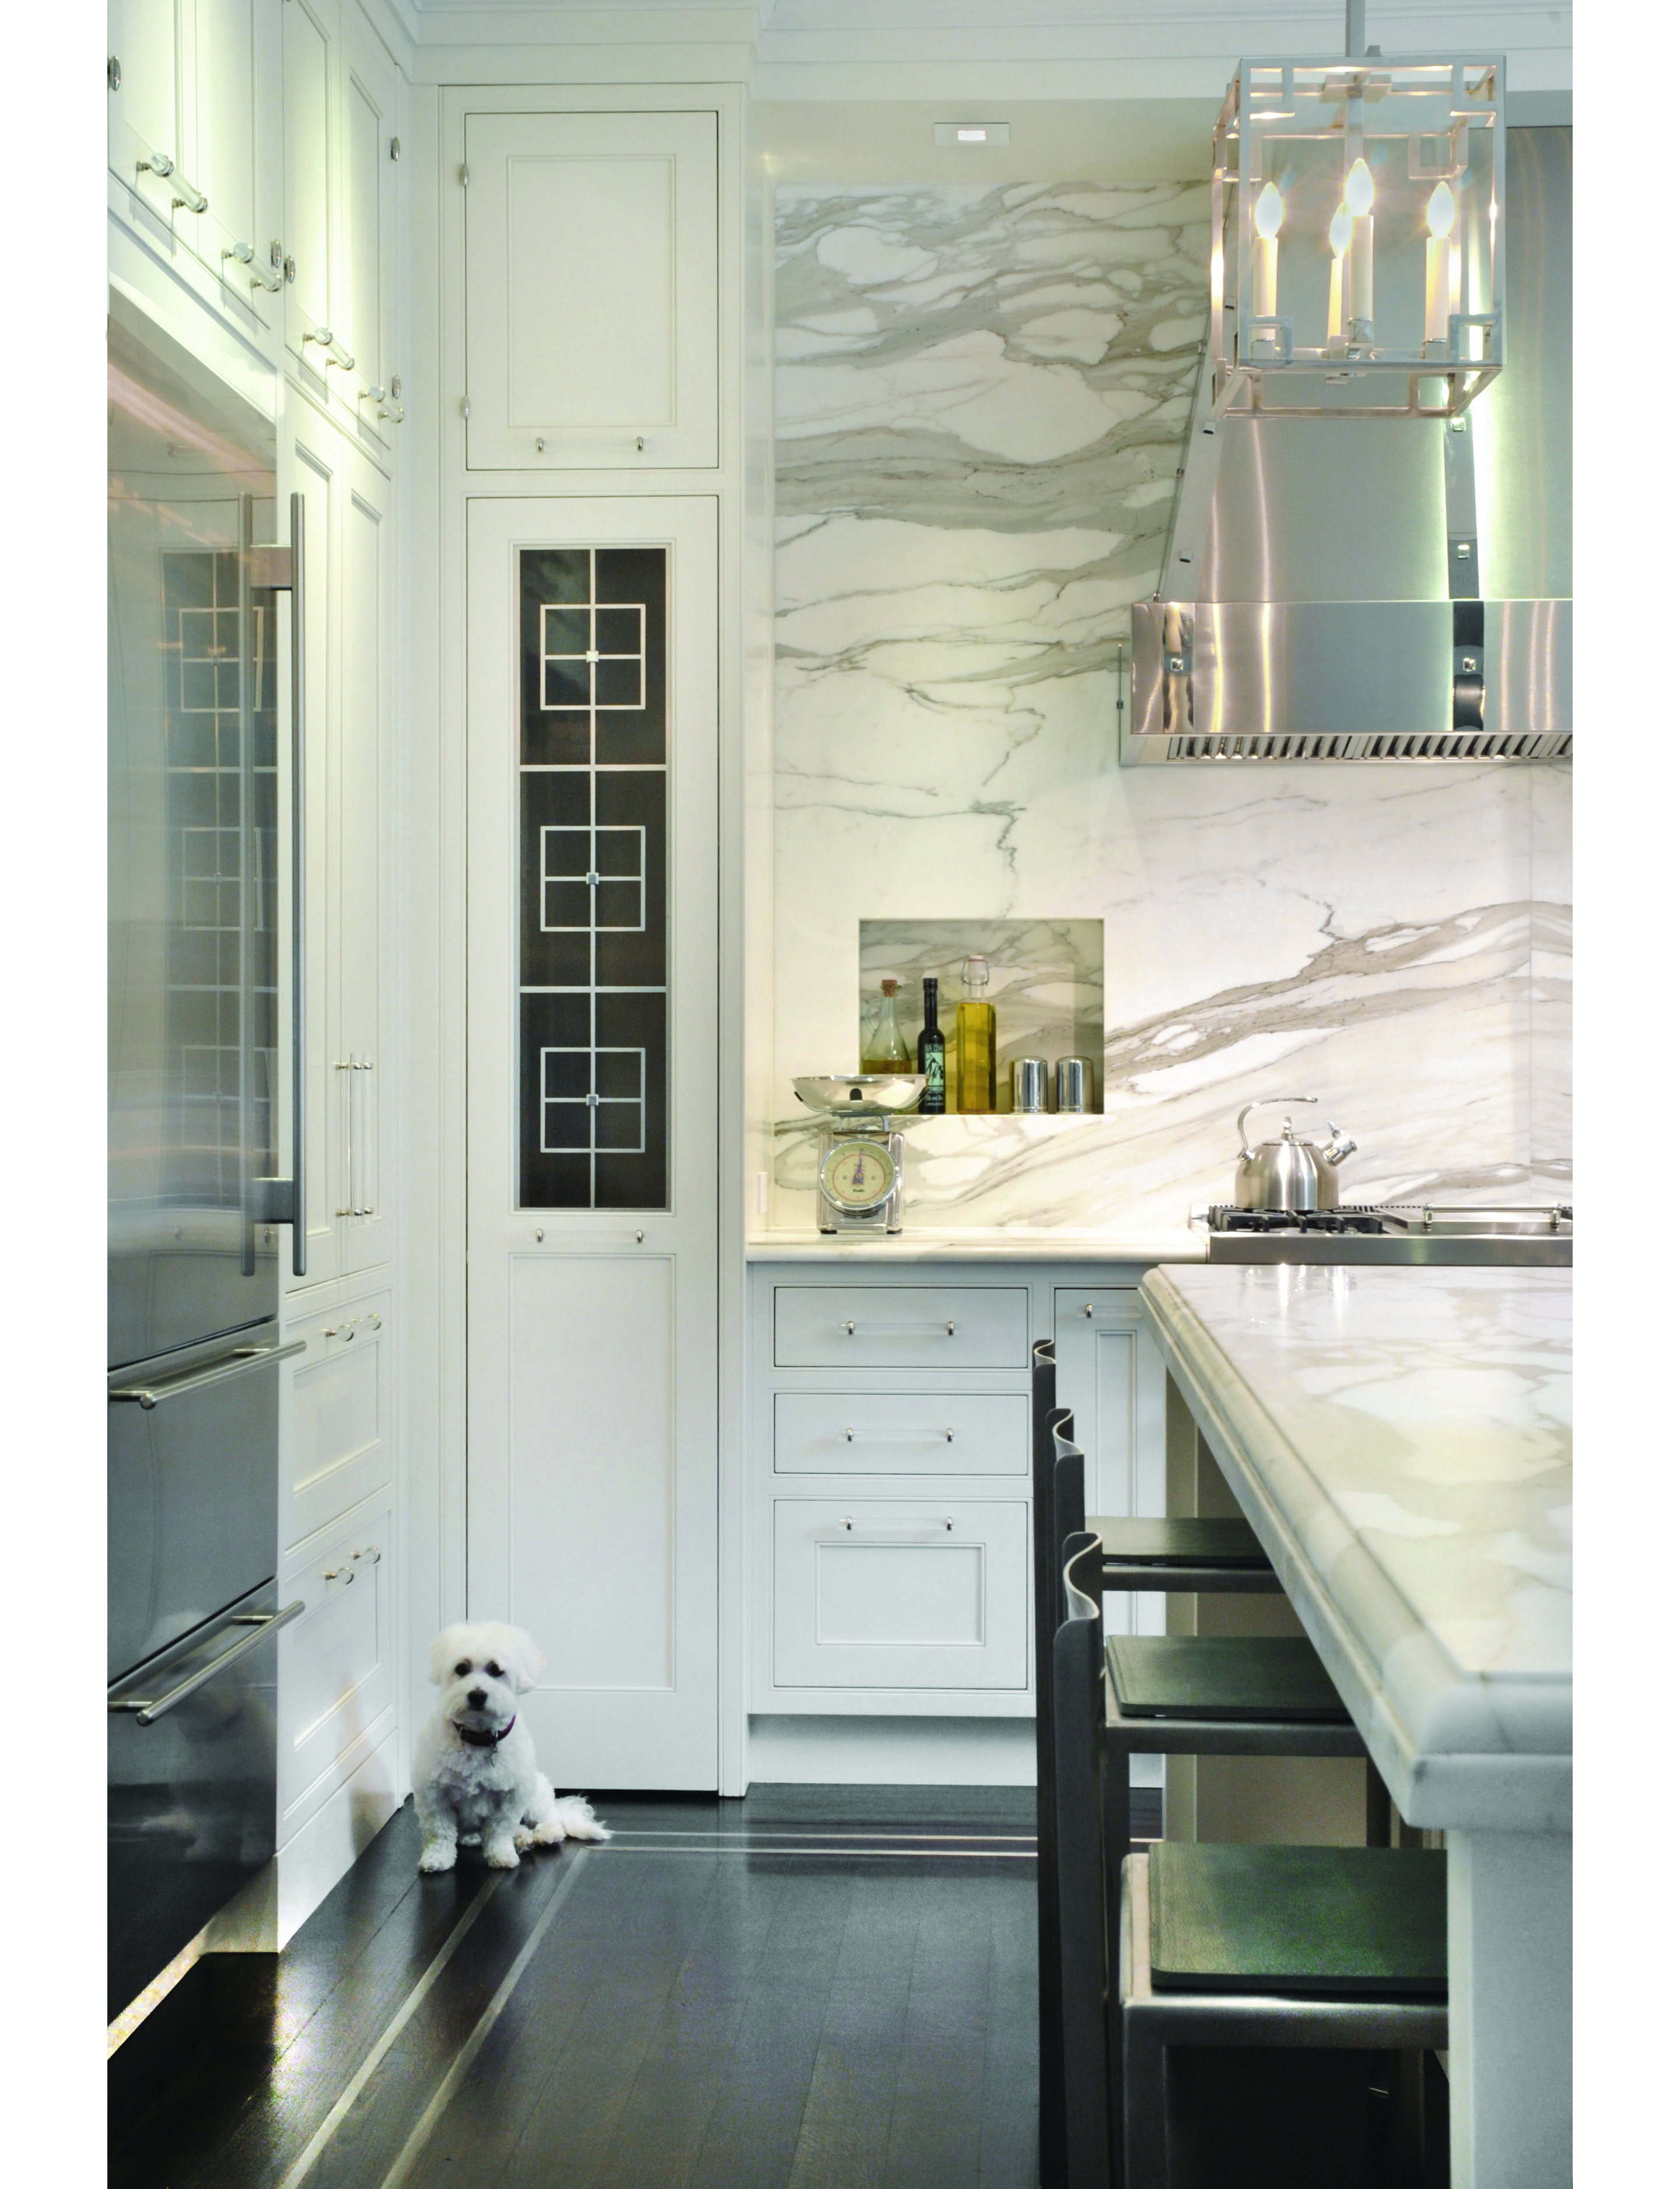 25 Beautiful All White Kitchens   Marbles, Ceilings and Kitchens